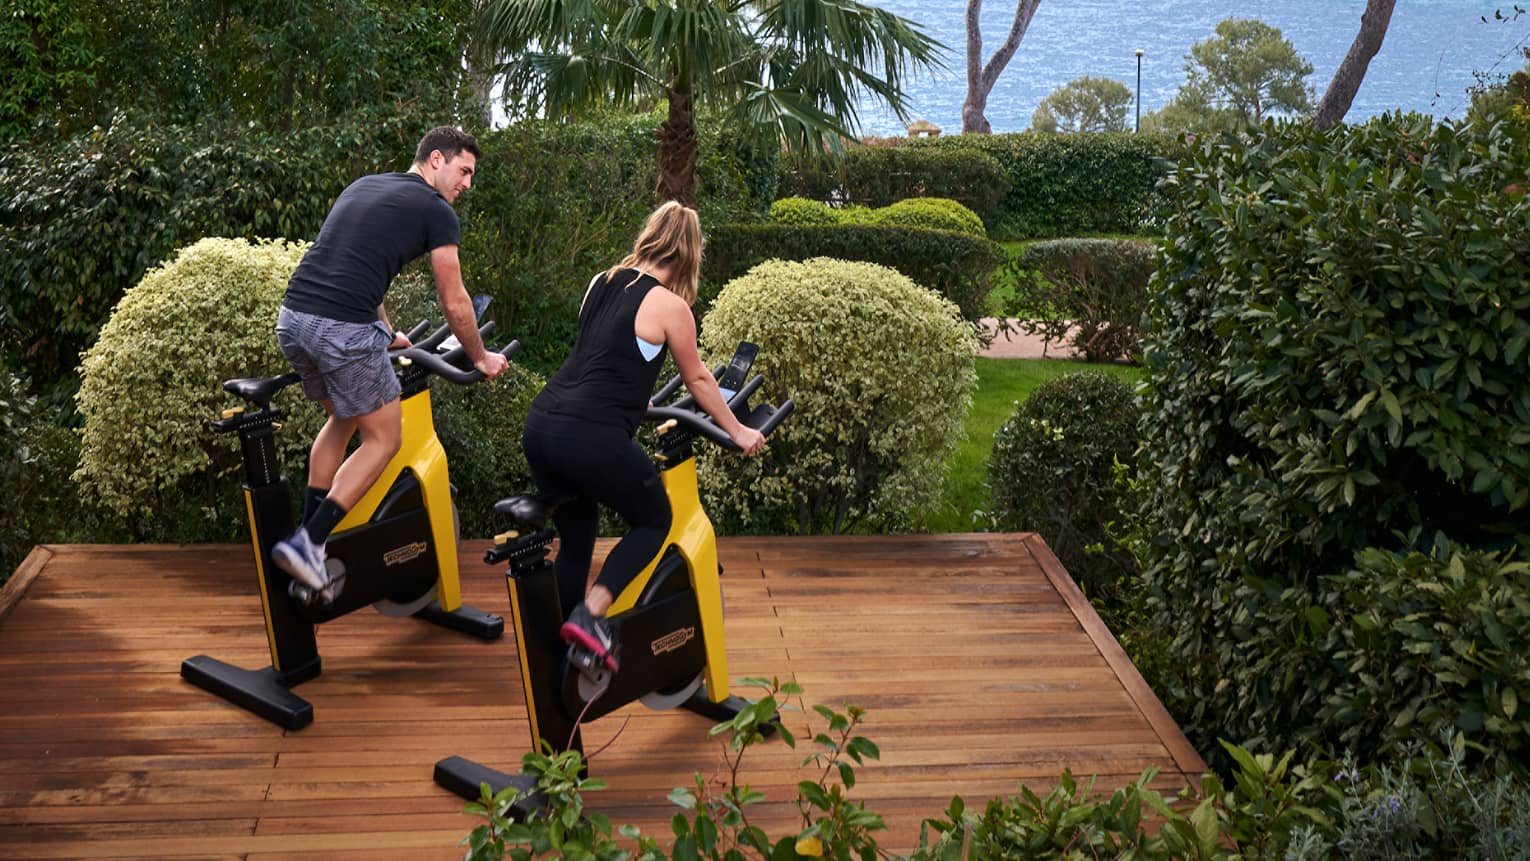 A man and a woman ride stationary bikes on outdoor wooden platform, sea in the distance